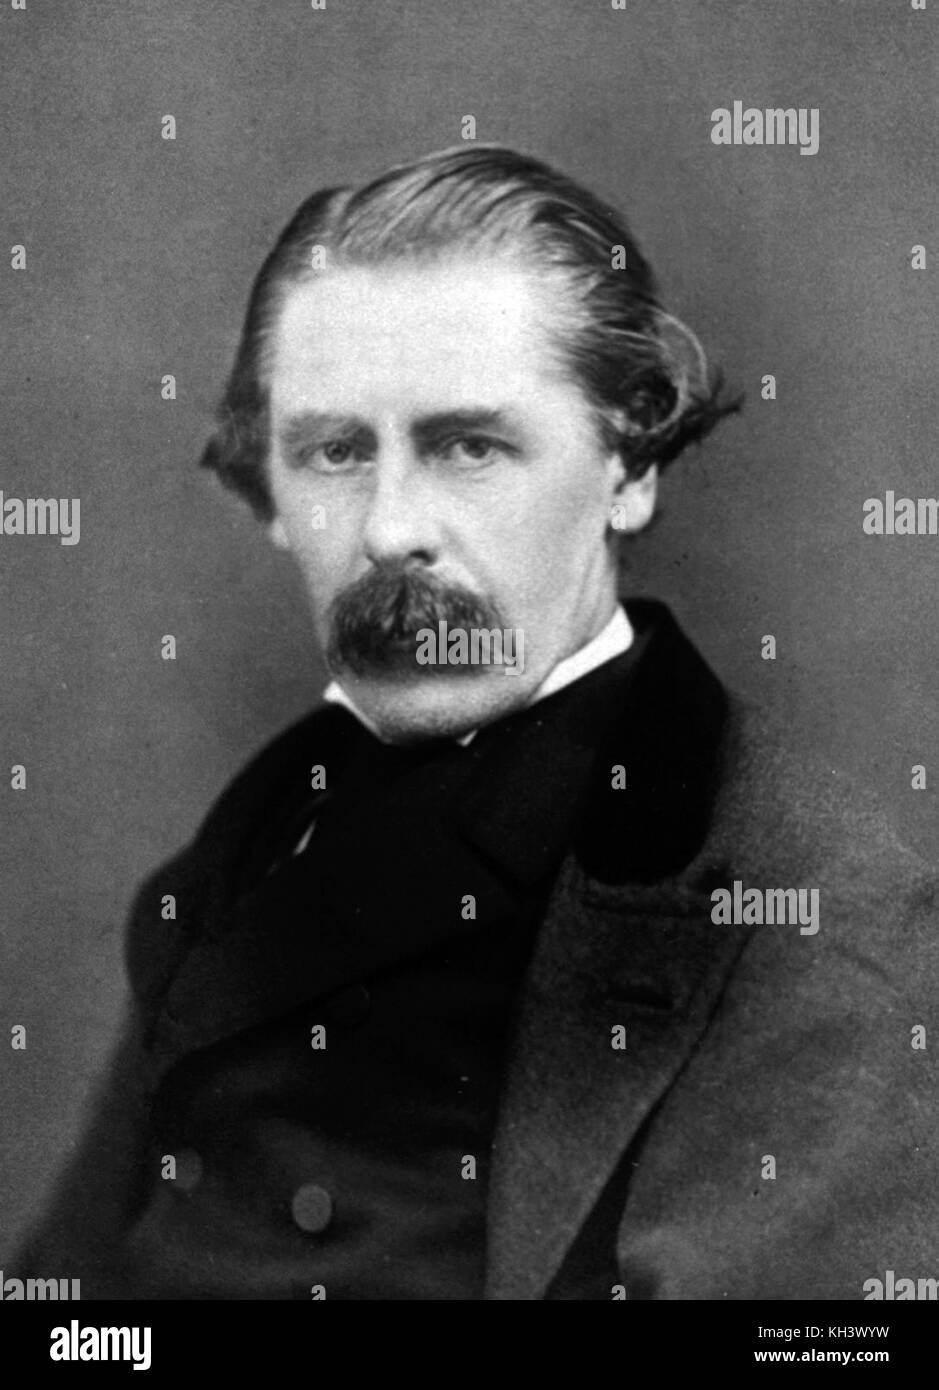 Sir Henry Thompson, 1st Baronet, British surgeon - Stock Image